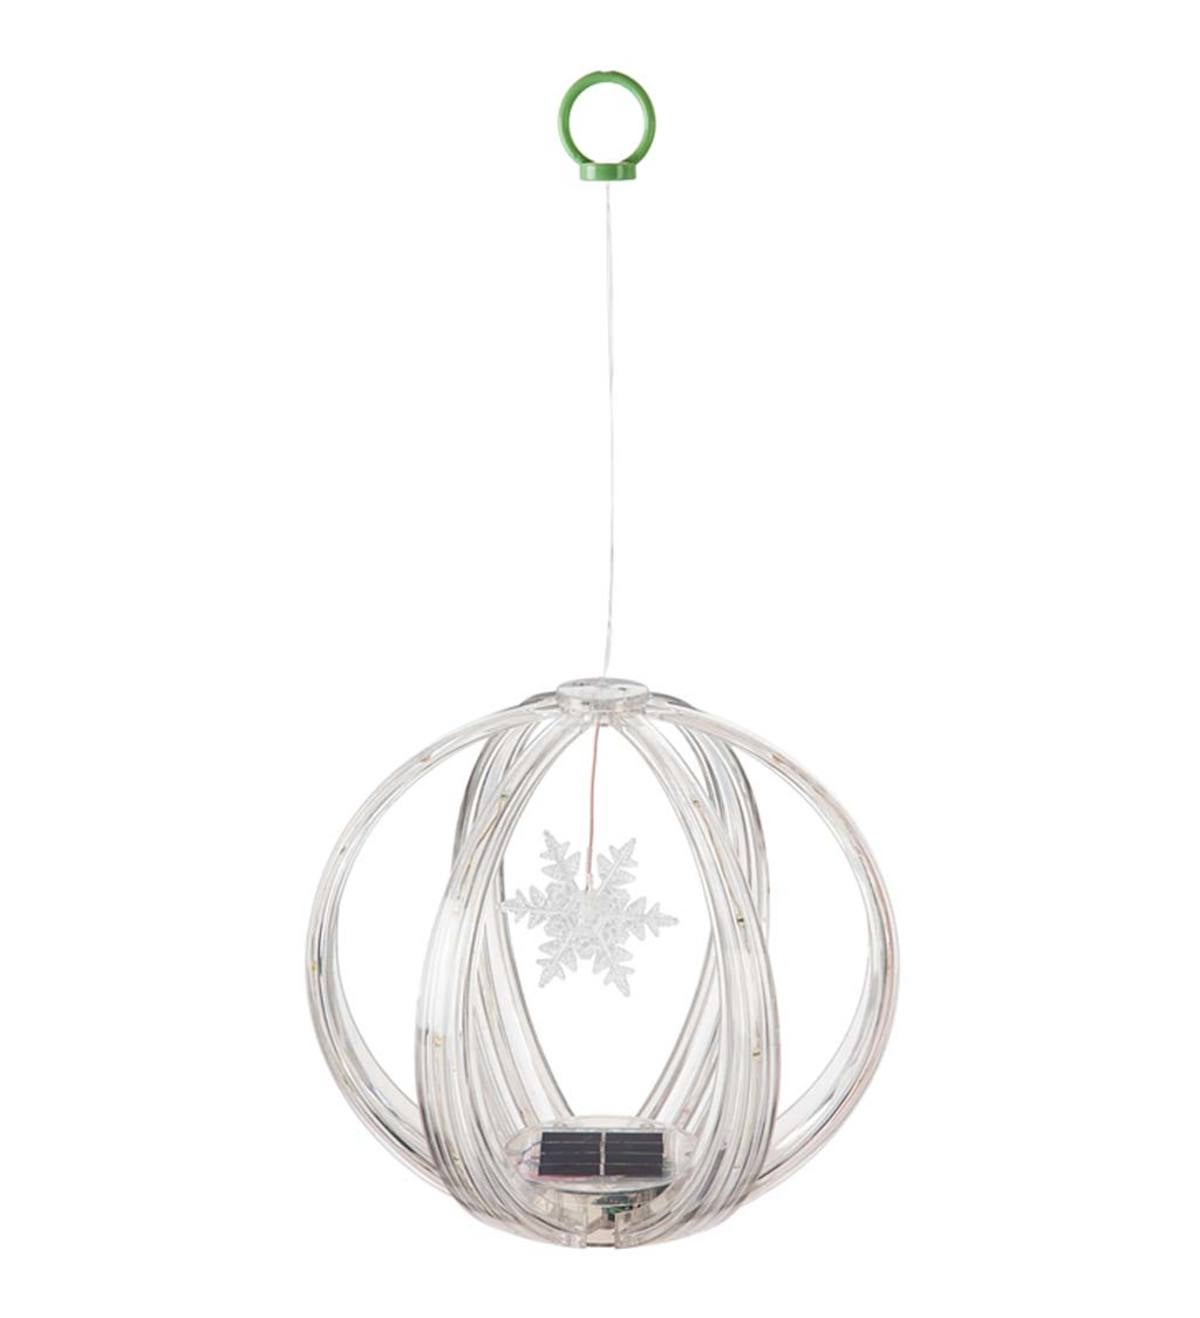 Solar Color Chasing Lighted Sphere Mobile - Snowflake